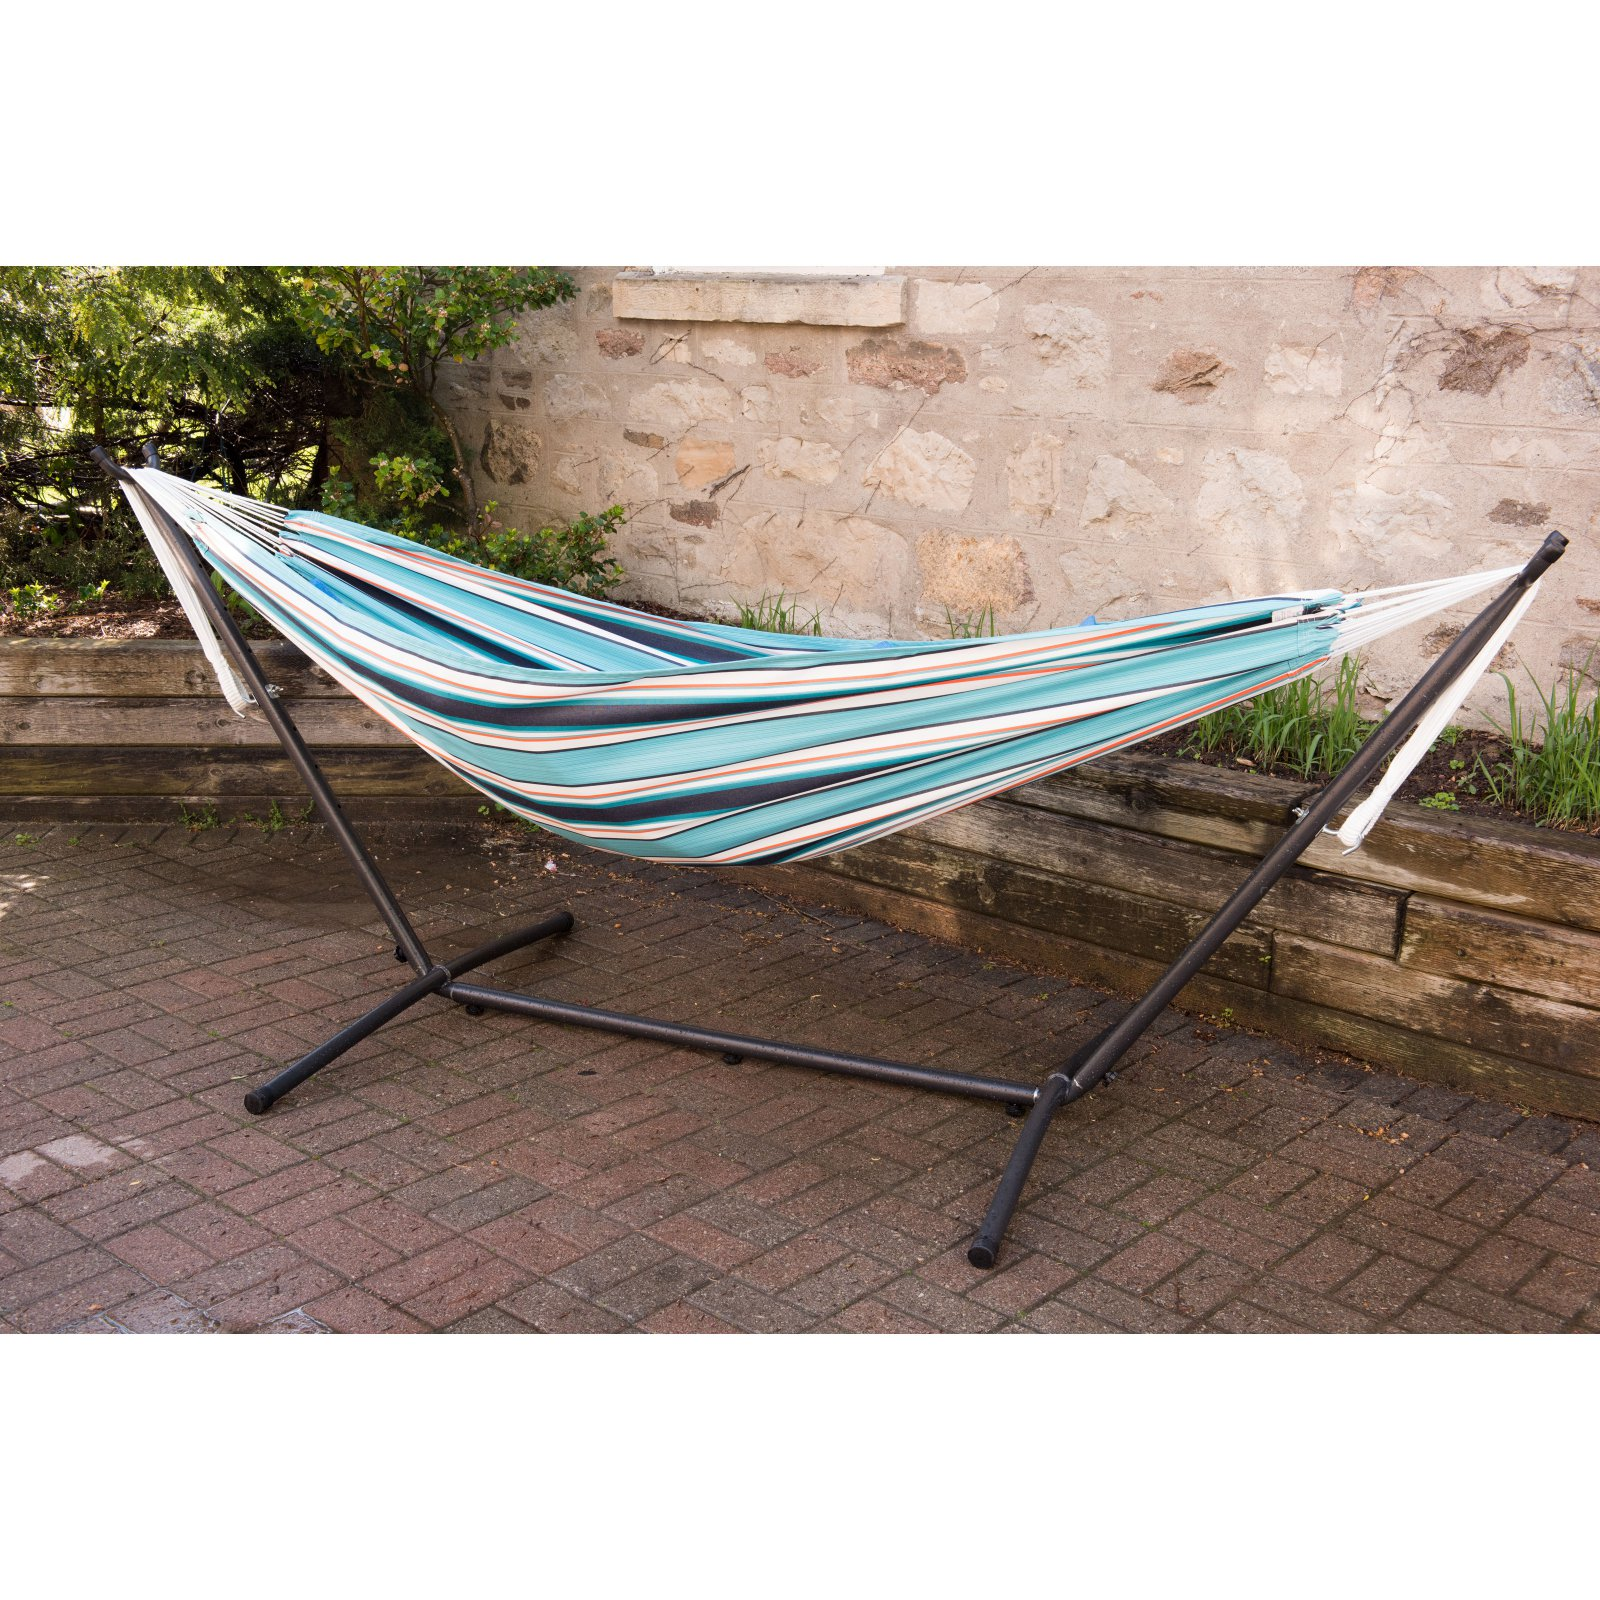 Vivere Sunbrella Token Surfside Hammock with Steel Stand